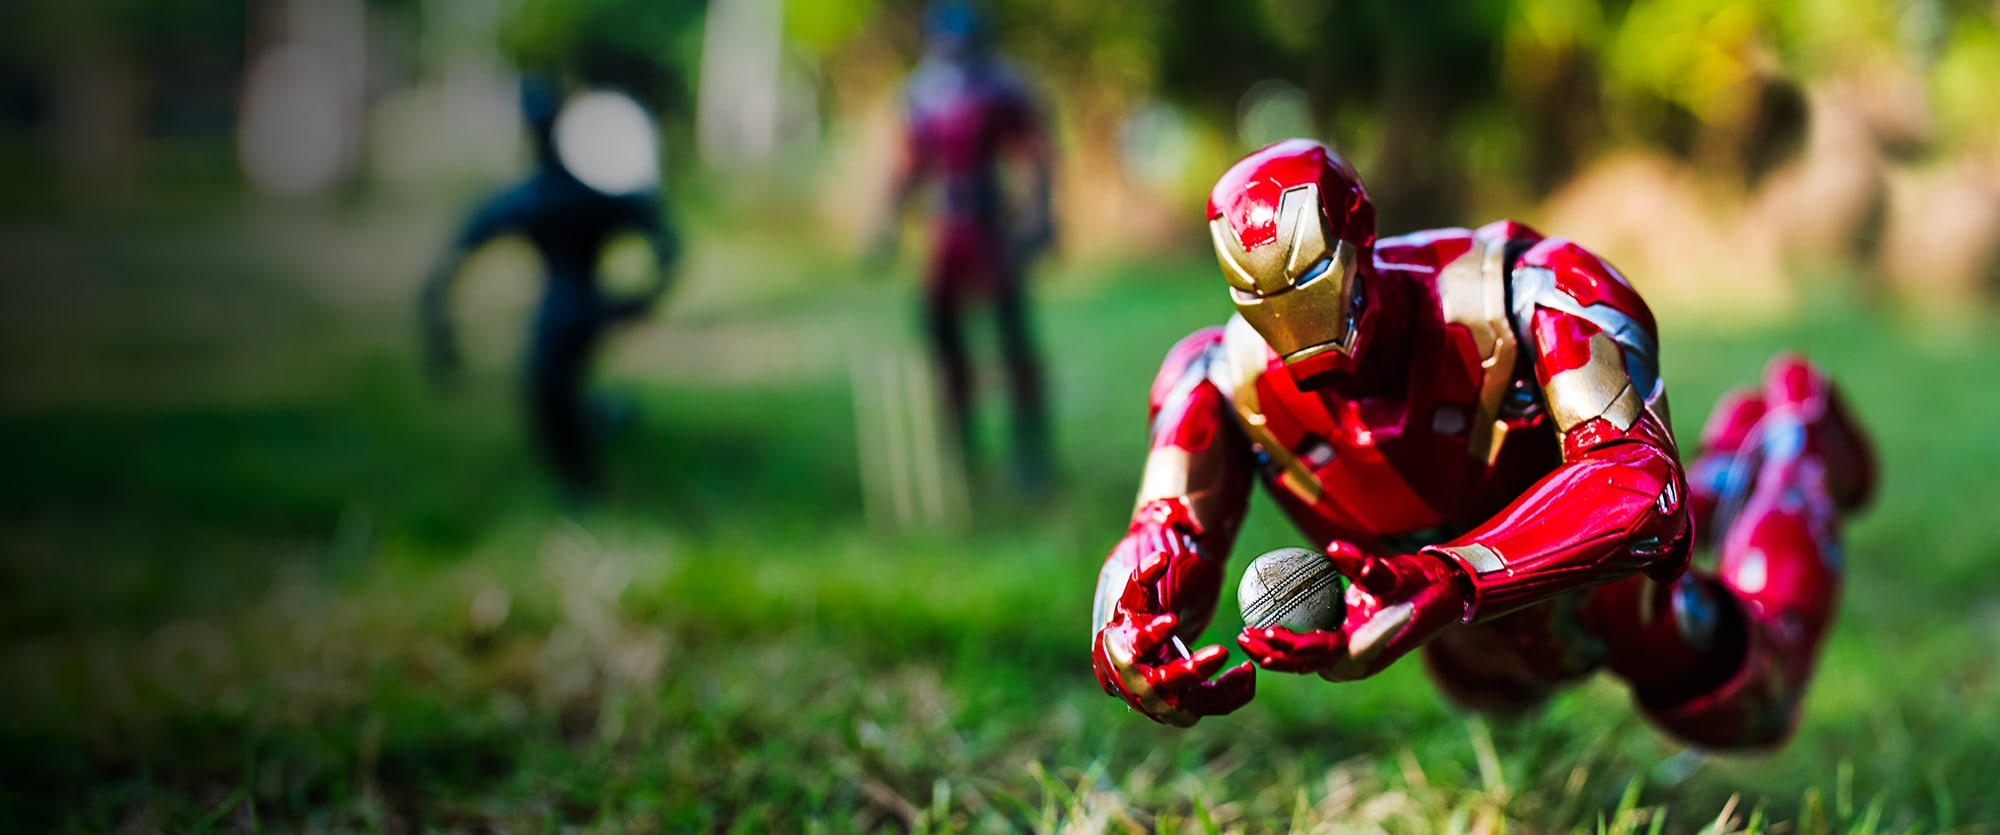 Marvel Merchandise Iron Man- Toys, Clothing, Collectibles & More | Shop Now at Amazon